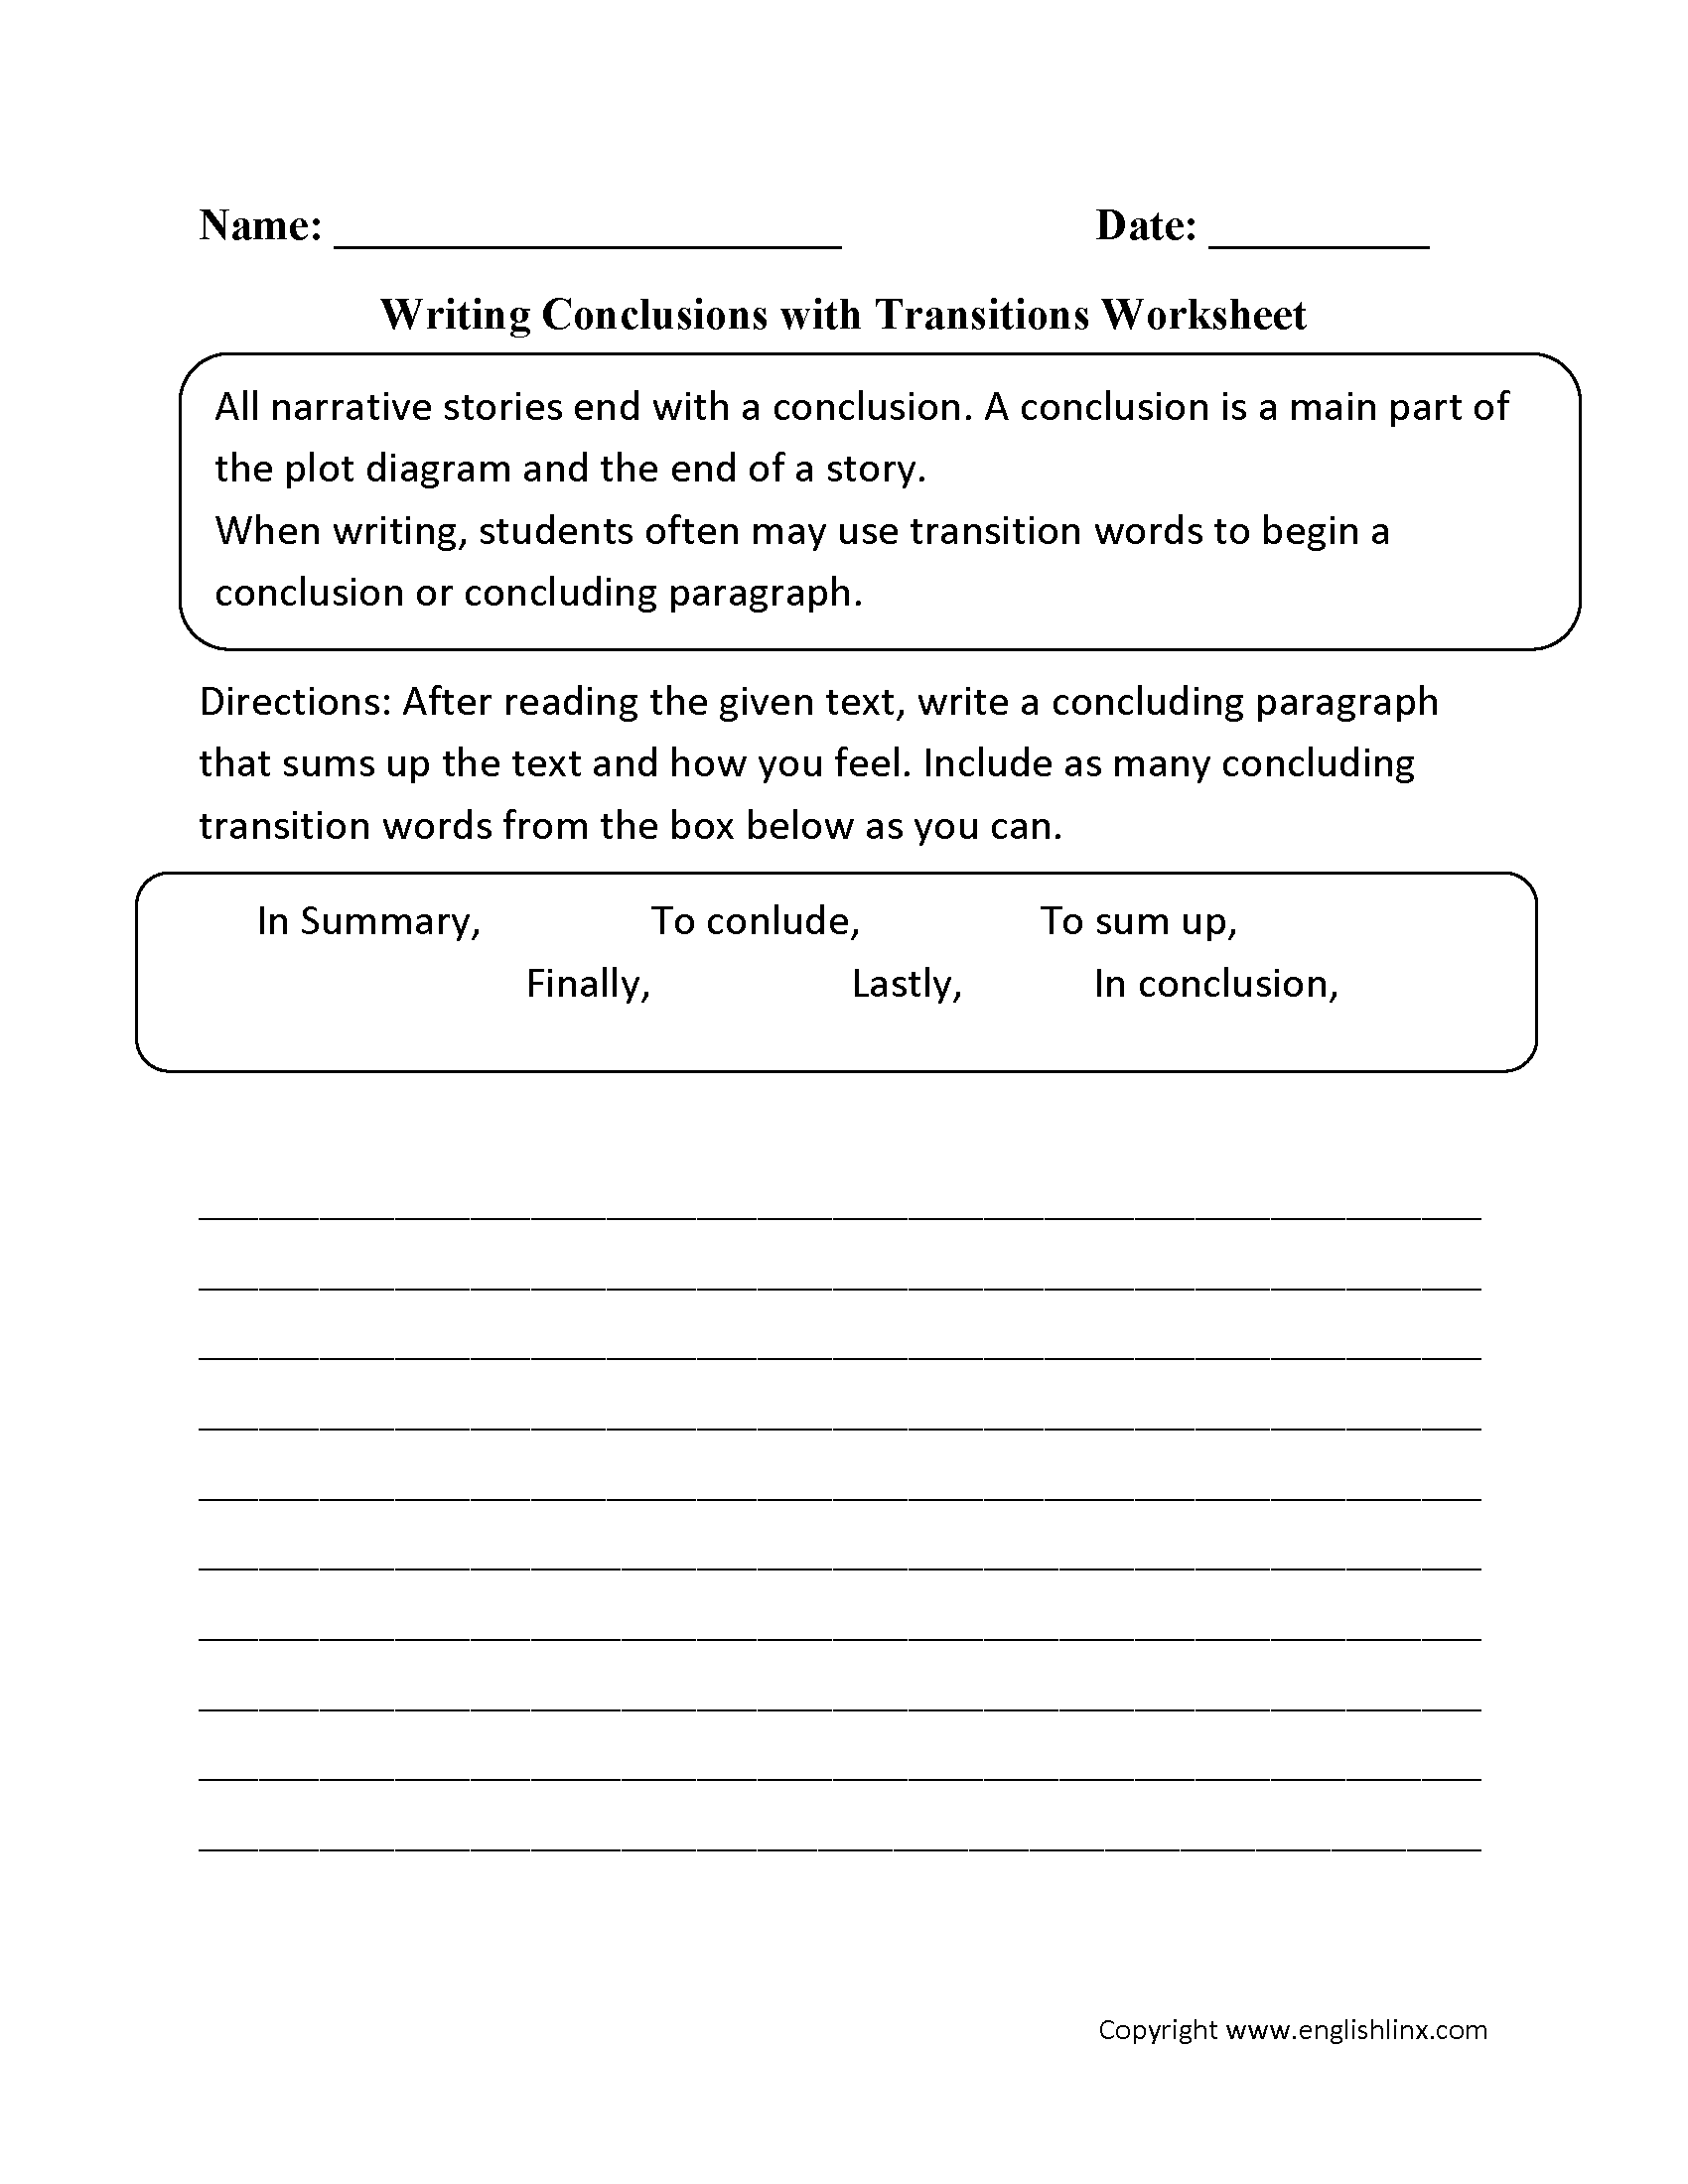 small resolution of Writing Conclusions with Transitions Worksheets   Reading worksheets